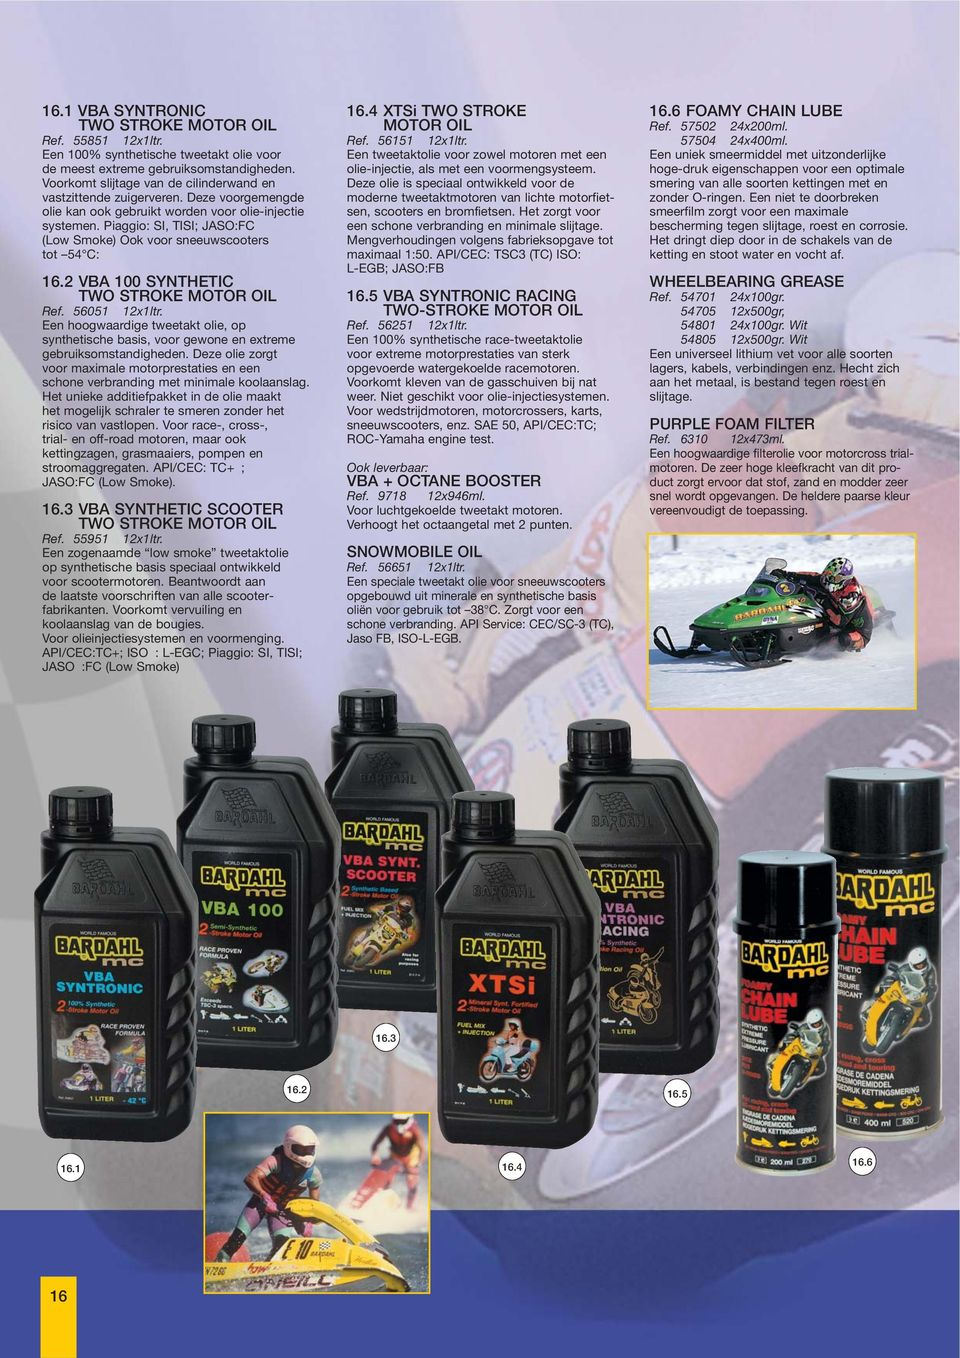 Piaggio: SI, TISI; JASO:FC (Low Smoke) Ook voor sneeuwscooters tot 54 C: 16.2 VBA 100 SYNTHETIC TWO STROKE MOTOR OIL Ref. 56051 12x1ltr.